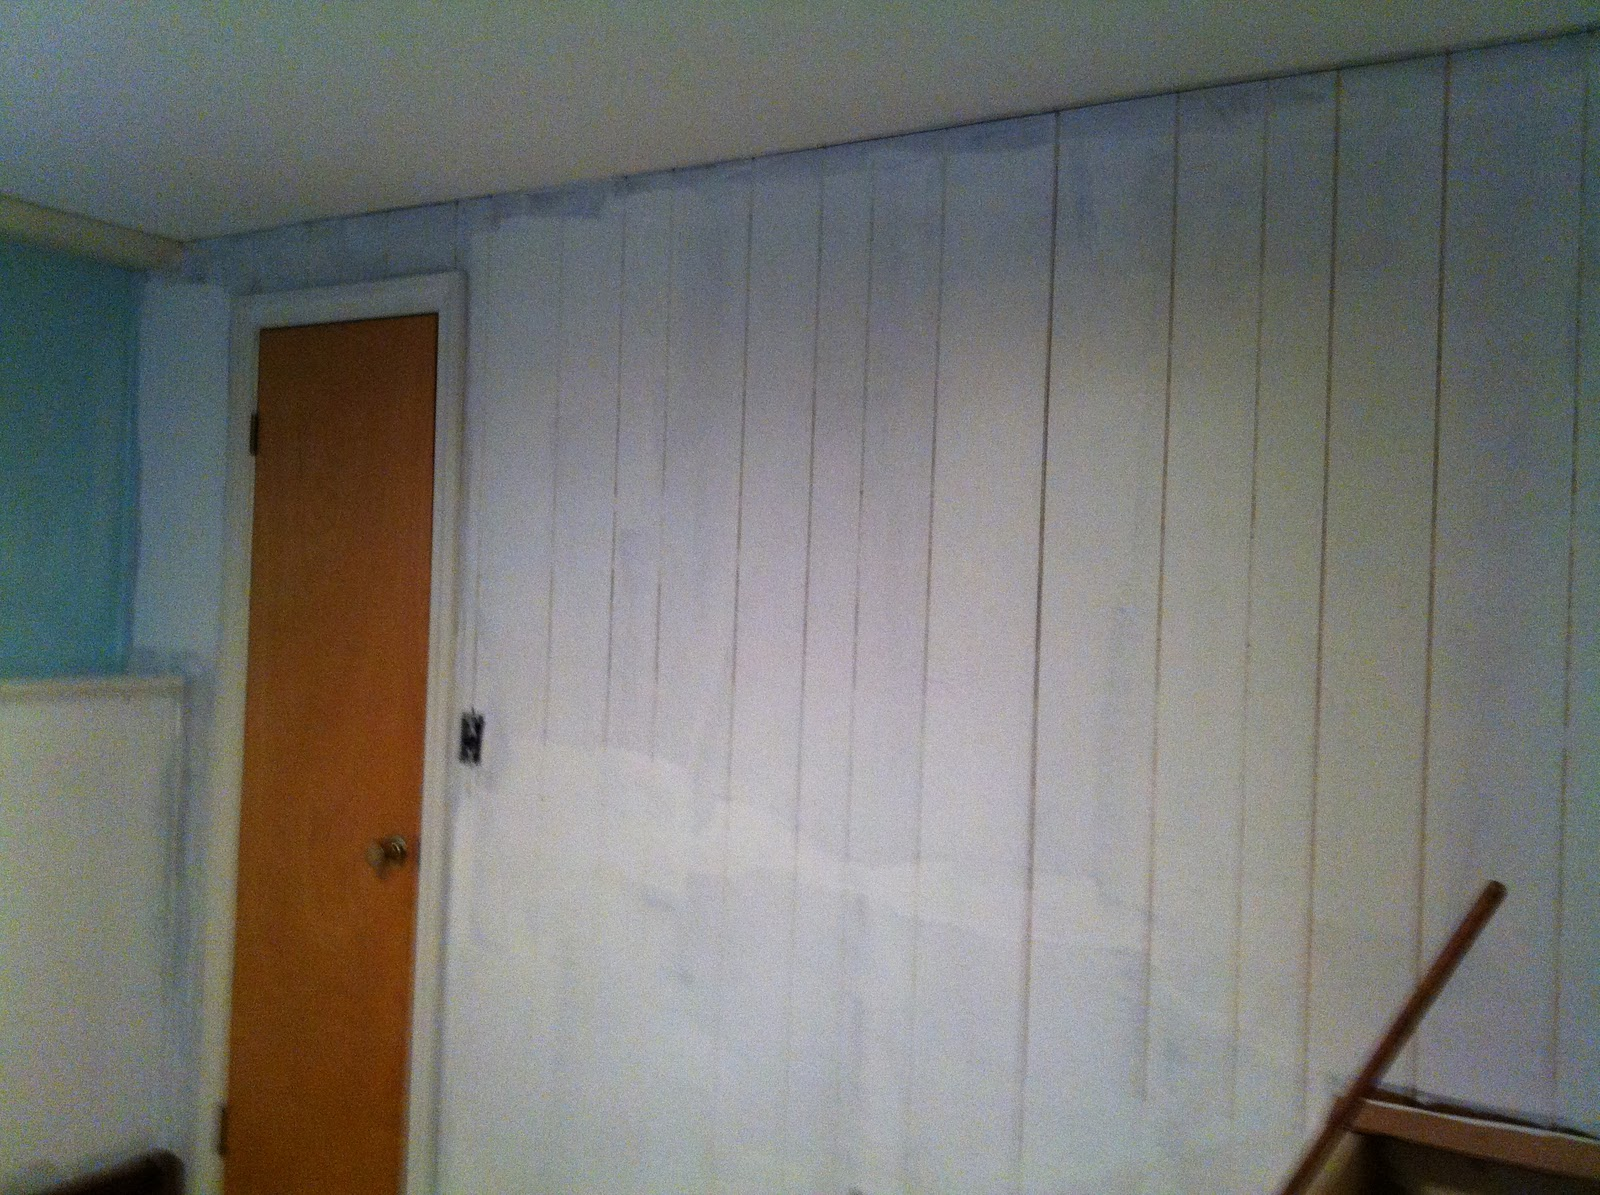 The Pfaff Pfix Painting Wood Paneling